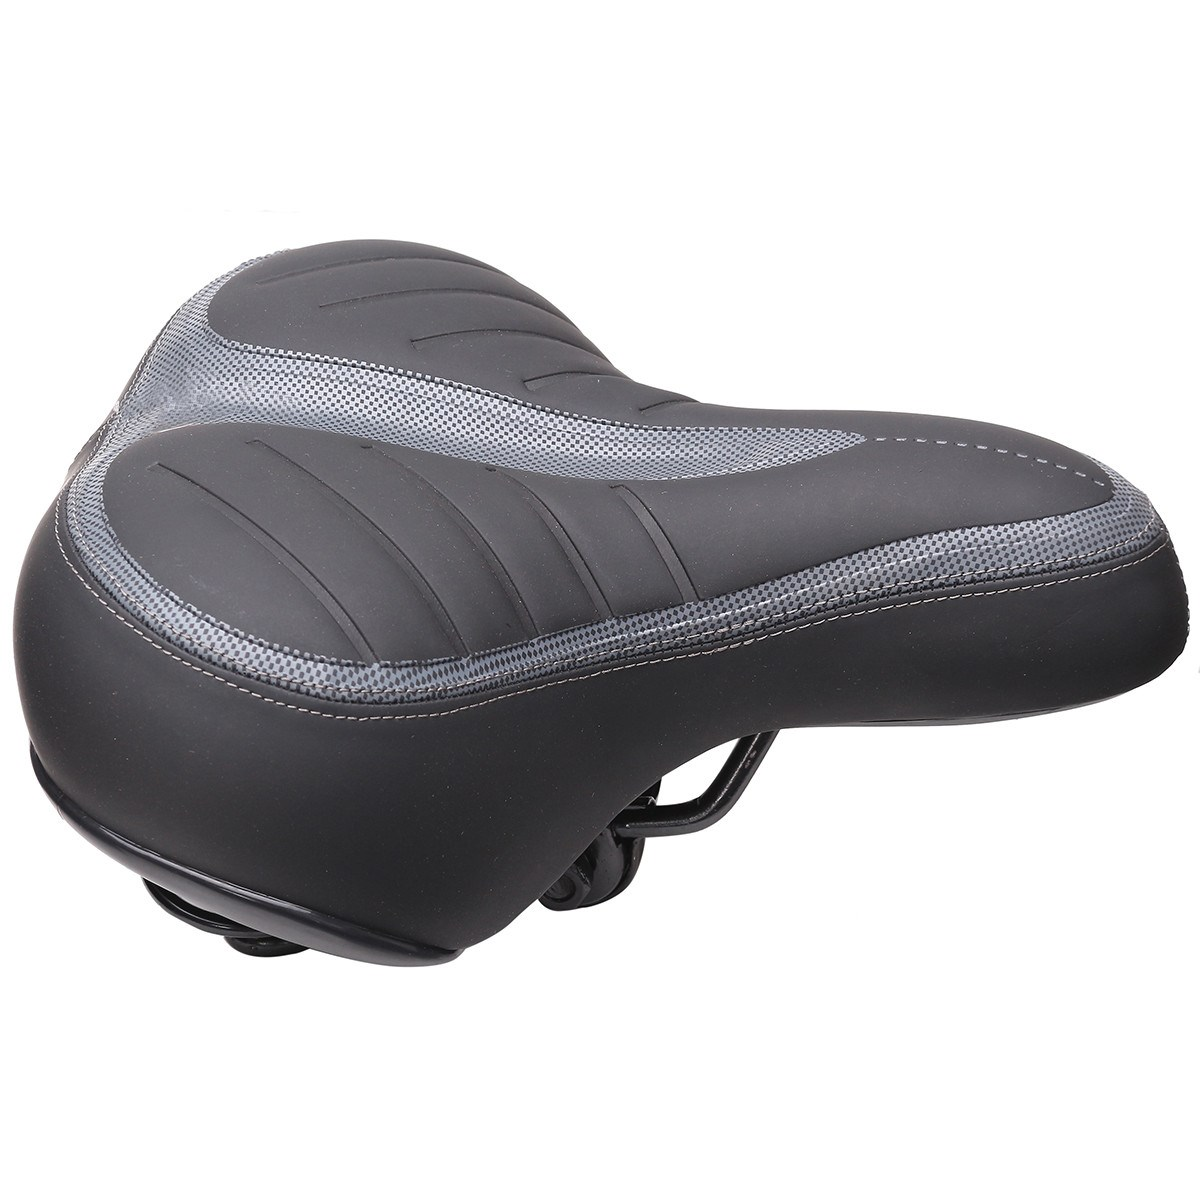 PU Leather Comfortable MTB Road Mountain Cycling Wide Seat Bicycle Saddle Mat Cushion Soft Seat Cover for <font><b>Bike</b></font> Bicycle parts